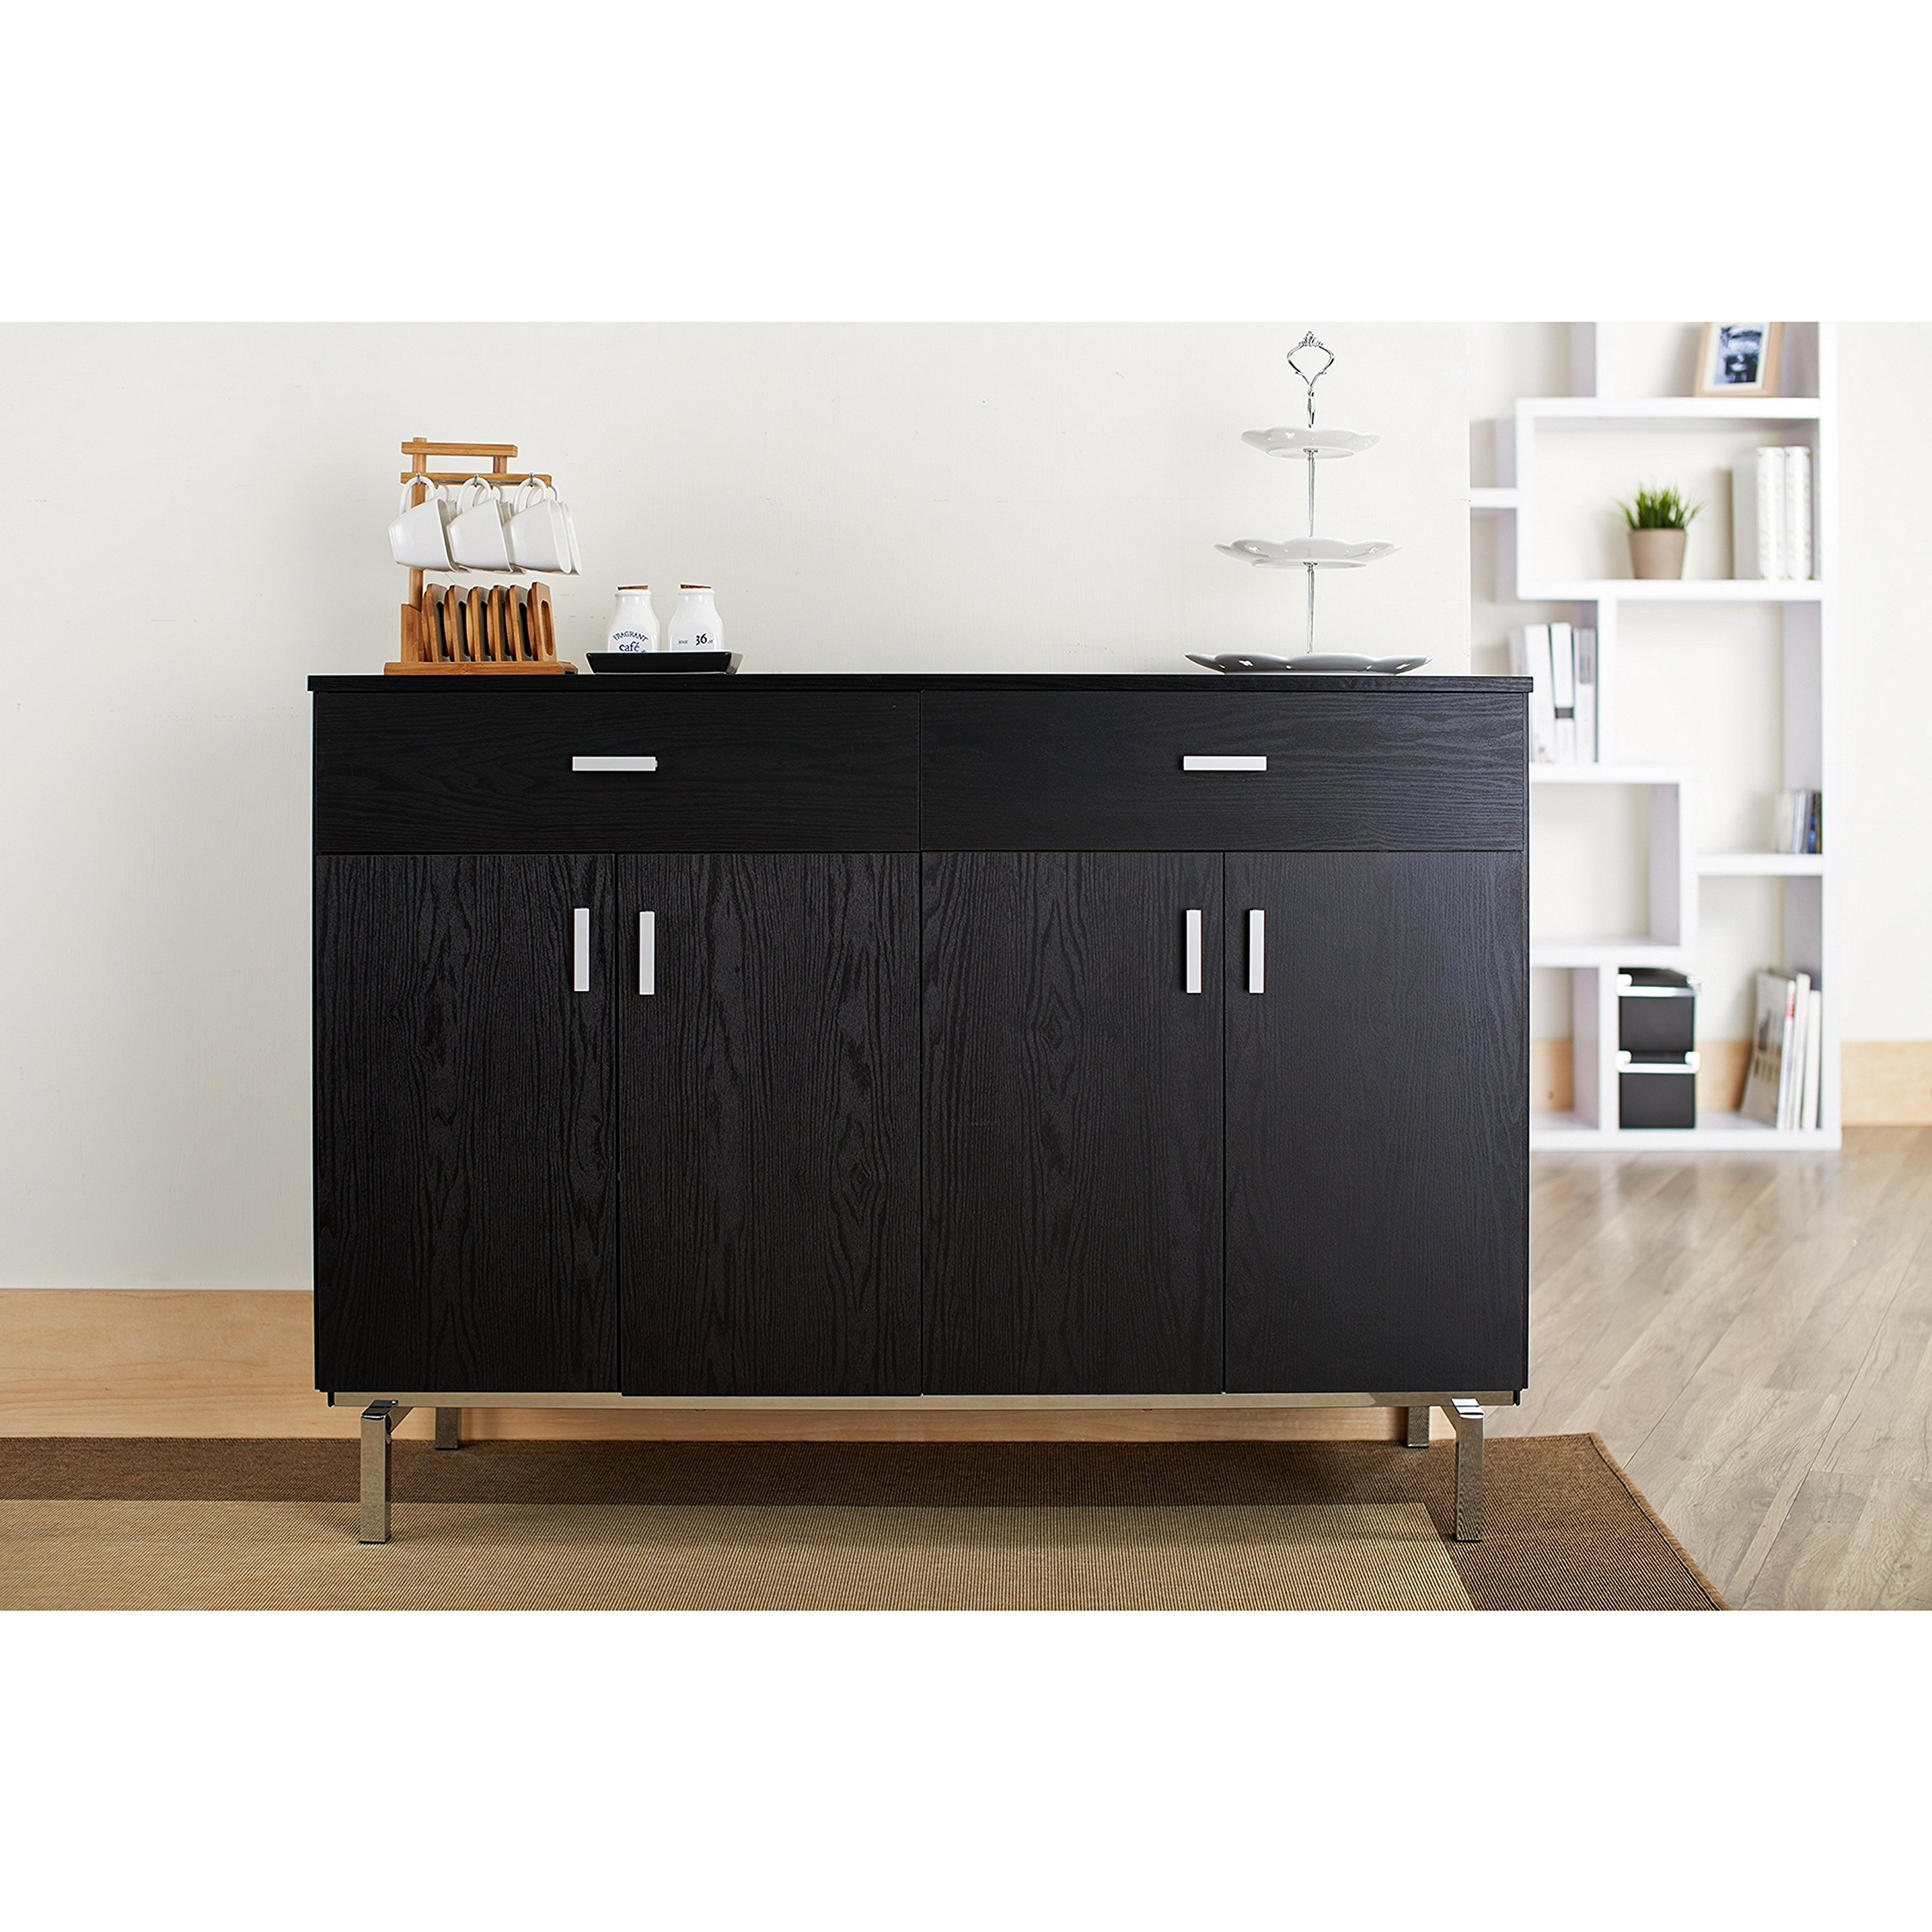 ModHaus Living Contemporary Wood Sideboard Buffet Table with Metal Legs Wine Holder 2 Drawers and 2 Cabinets - Includes Pen (Black)